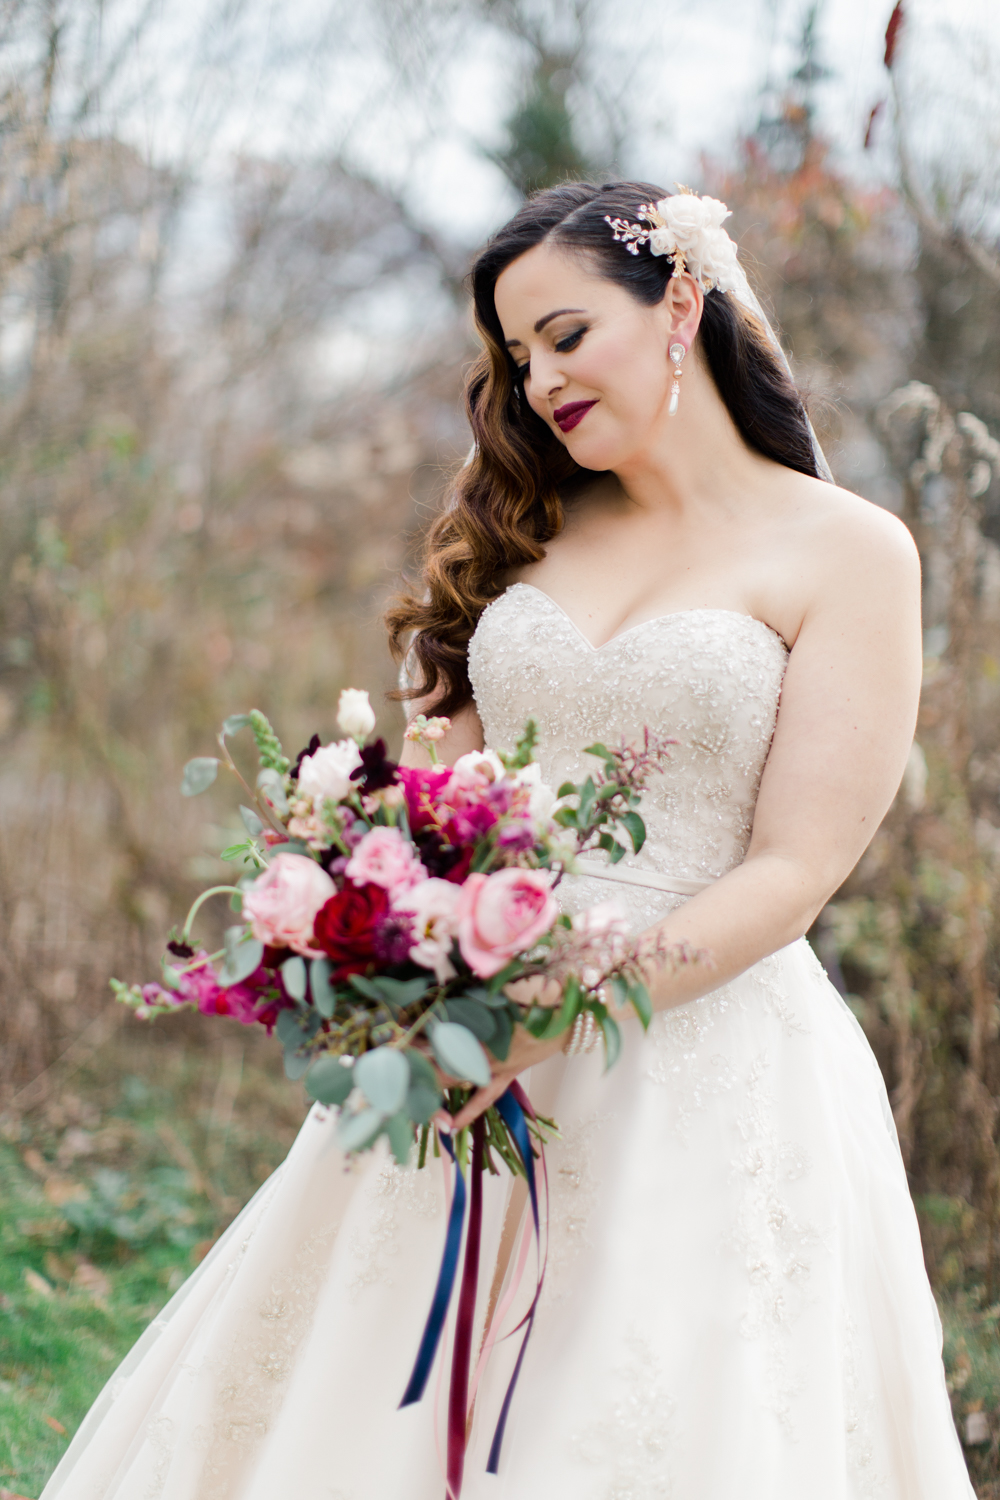 Bella_Sera_Pgh_Romantic_Wedding_Winter (12 of 22).jpg